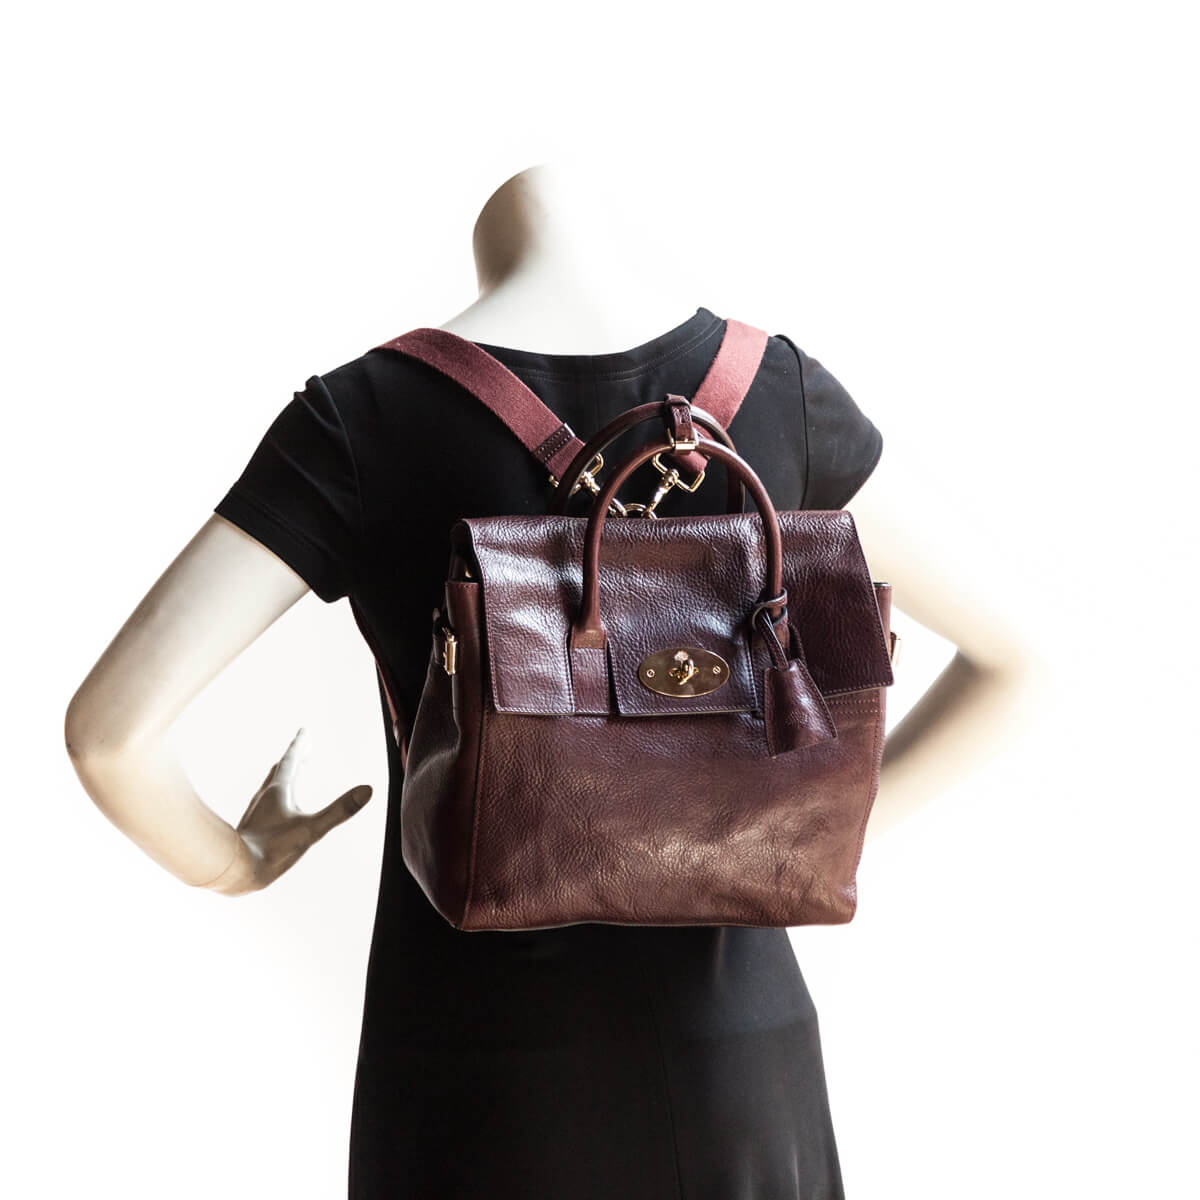 a3c82f76d8 ... Mulberry Oxblood Cara Delevingne Convertible Backpack - LOVE that BAG -  Preowned Authentic Designer Handbags